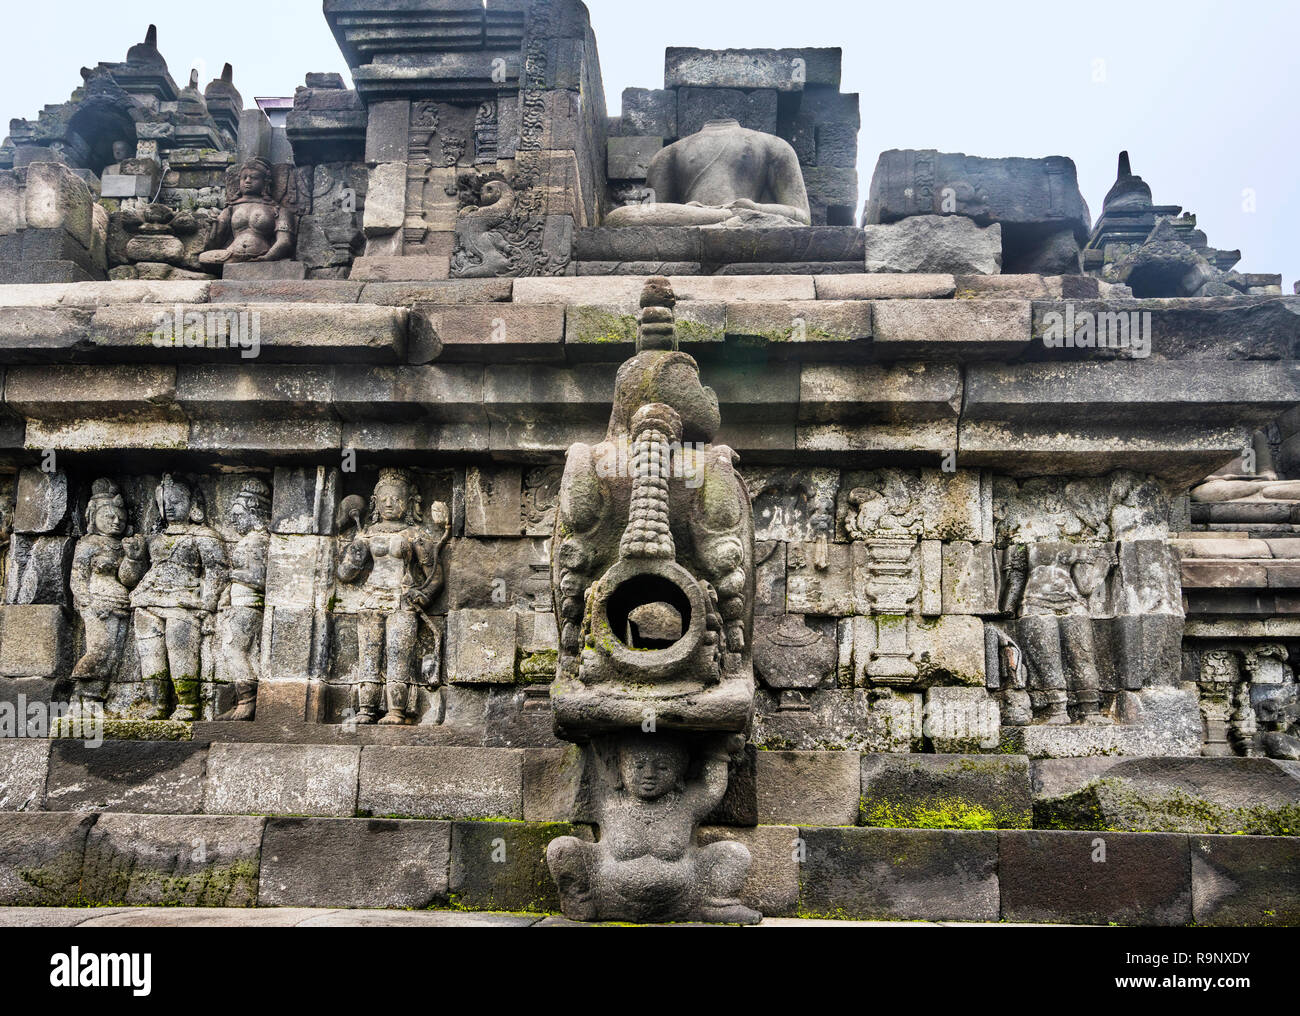 carved stormwater spout and bas-reliefs on a balustrade at 9th century Borobudur Mahayana Buddhist temple, Central Java, Indonesia - Stock Image